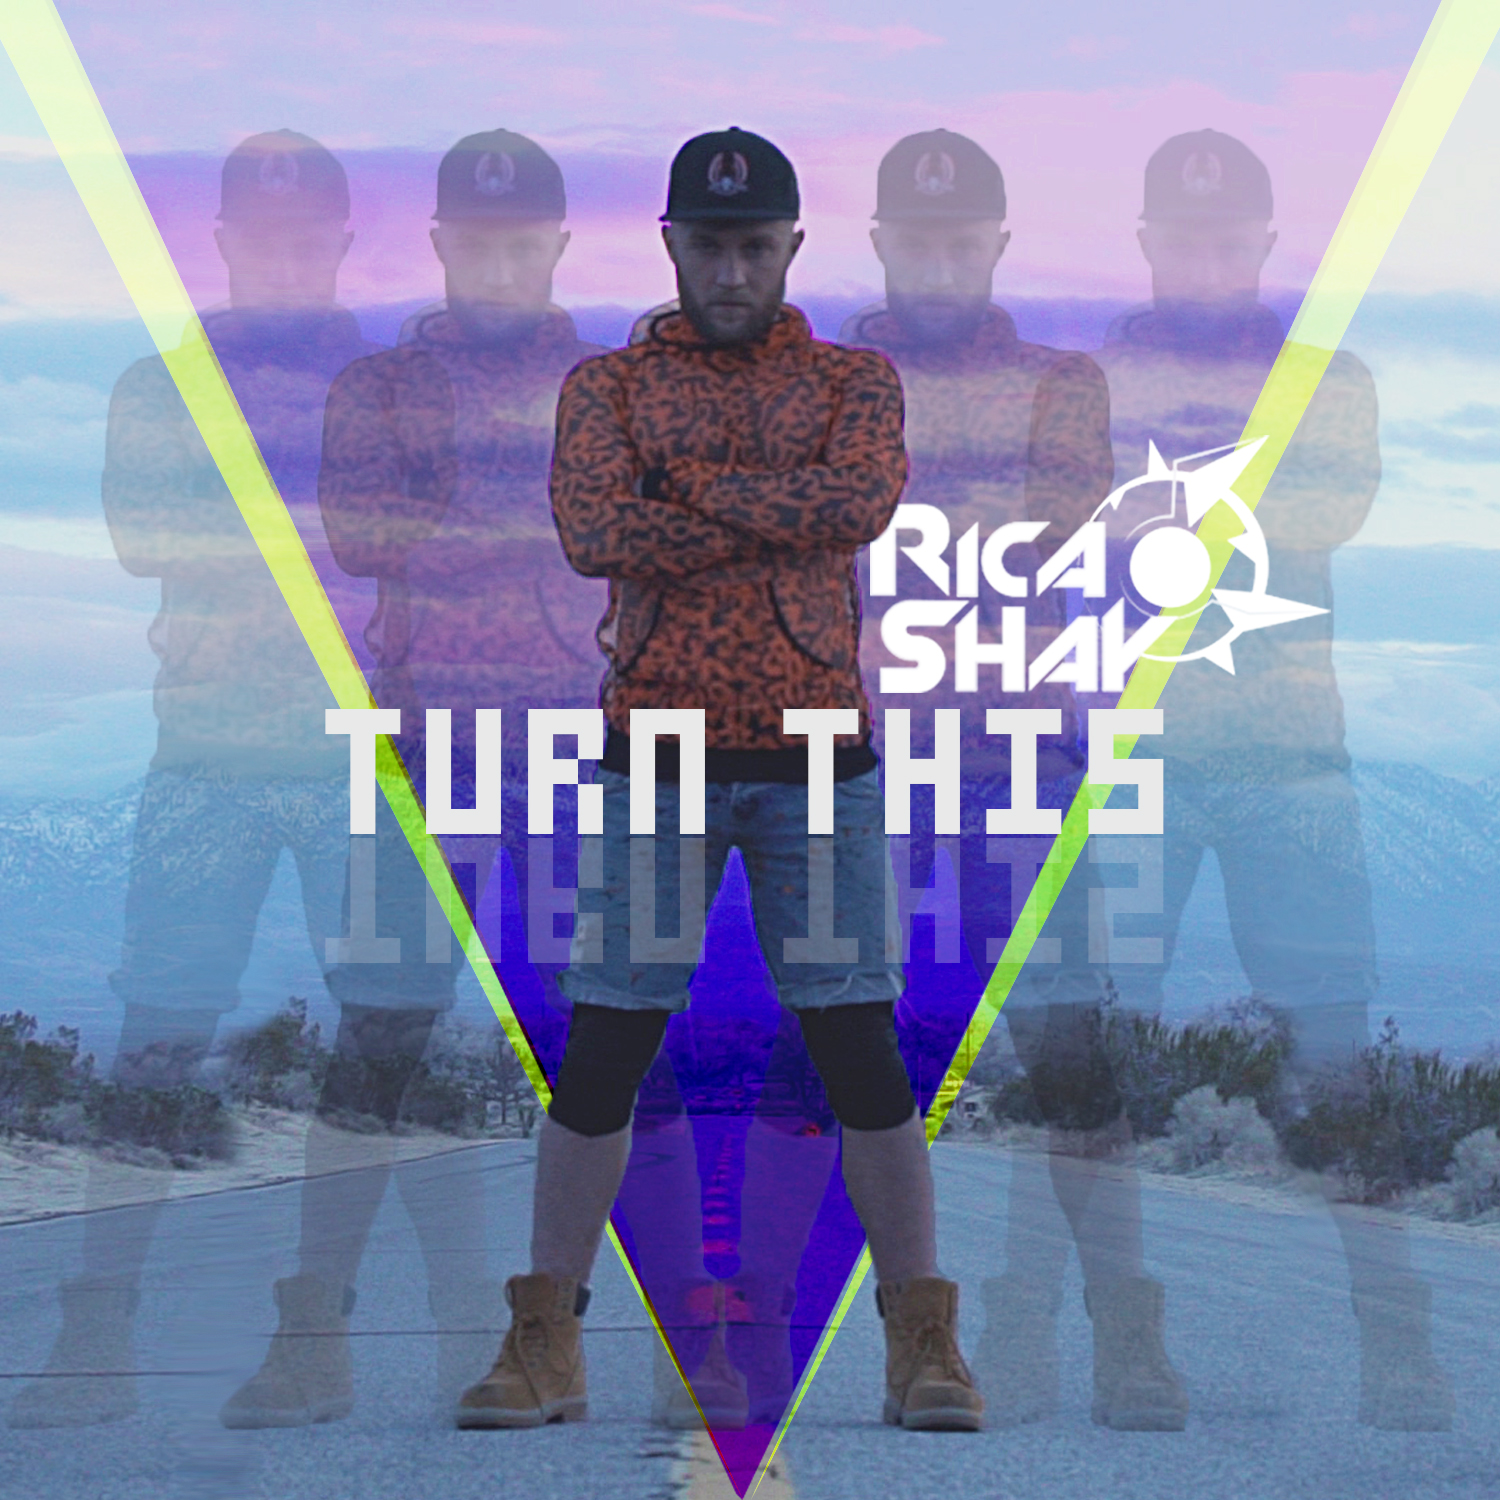 Turn This Artwork